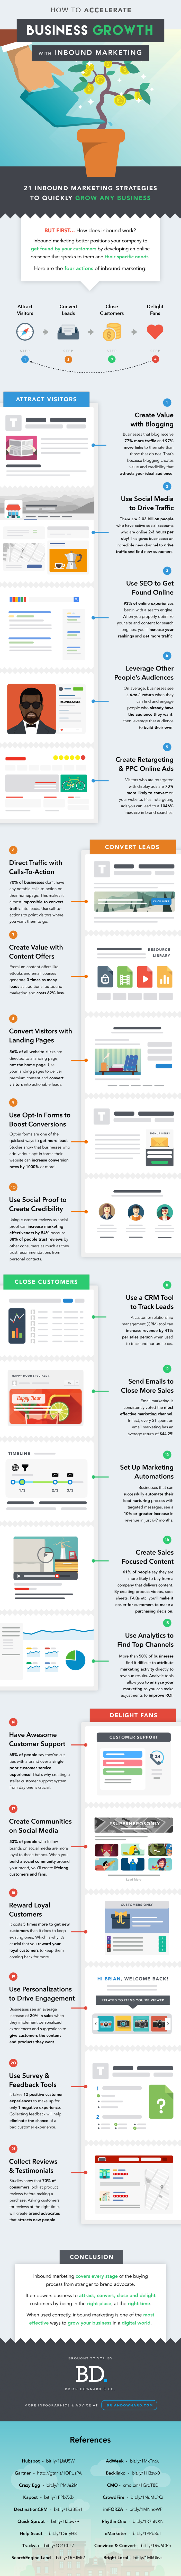 business-growth-infographic